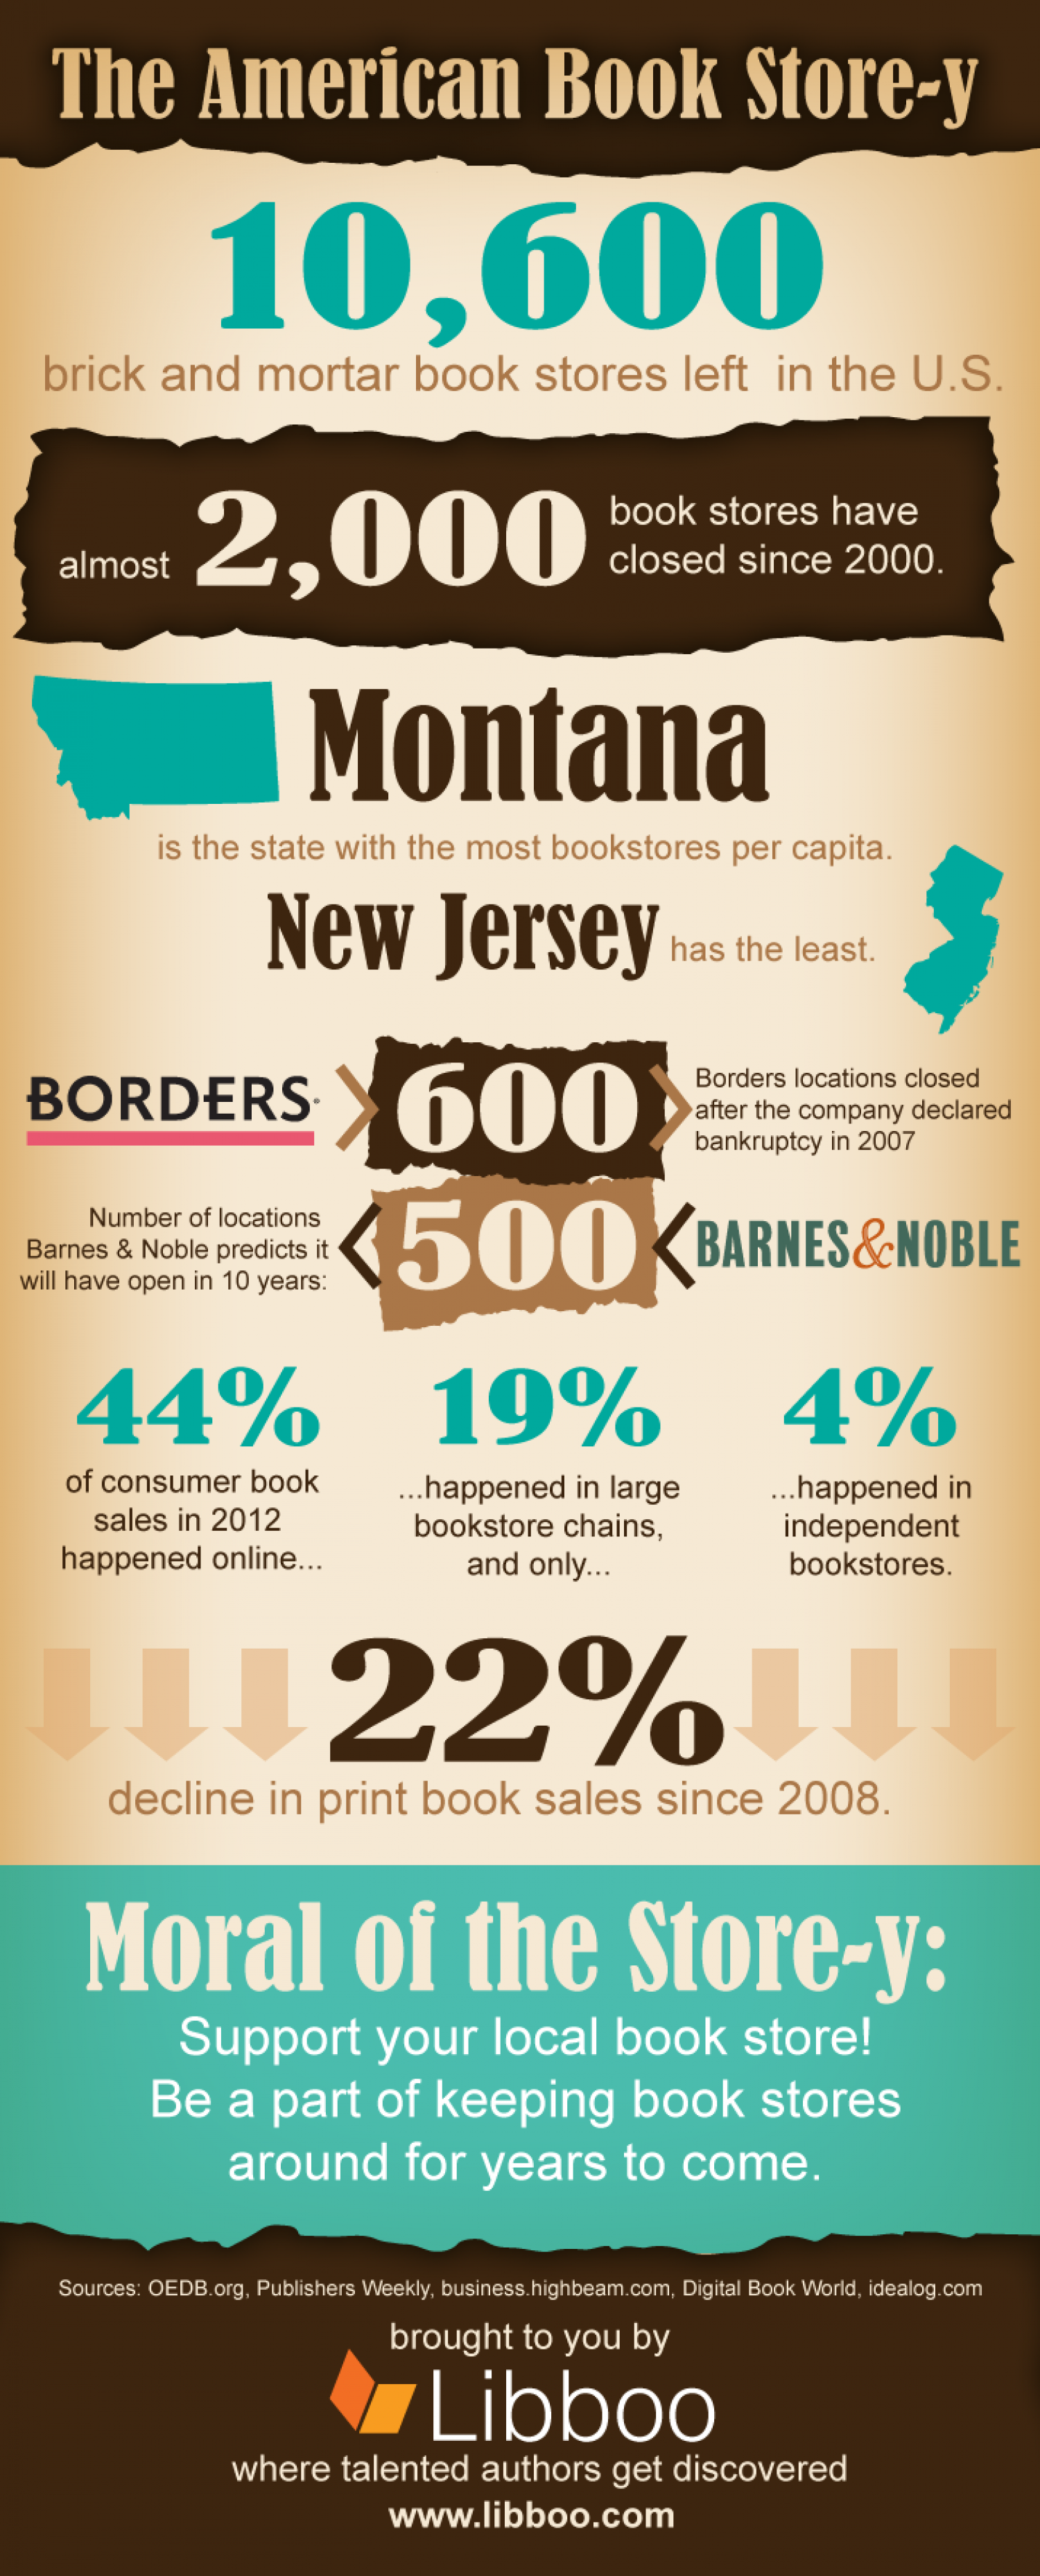 The American Book Store-y Infographic